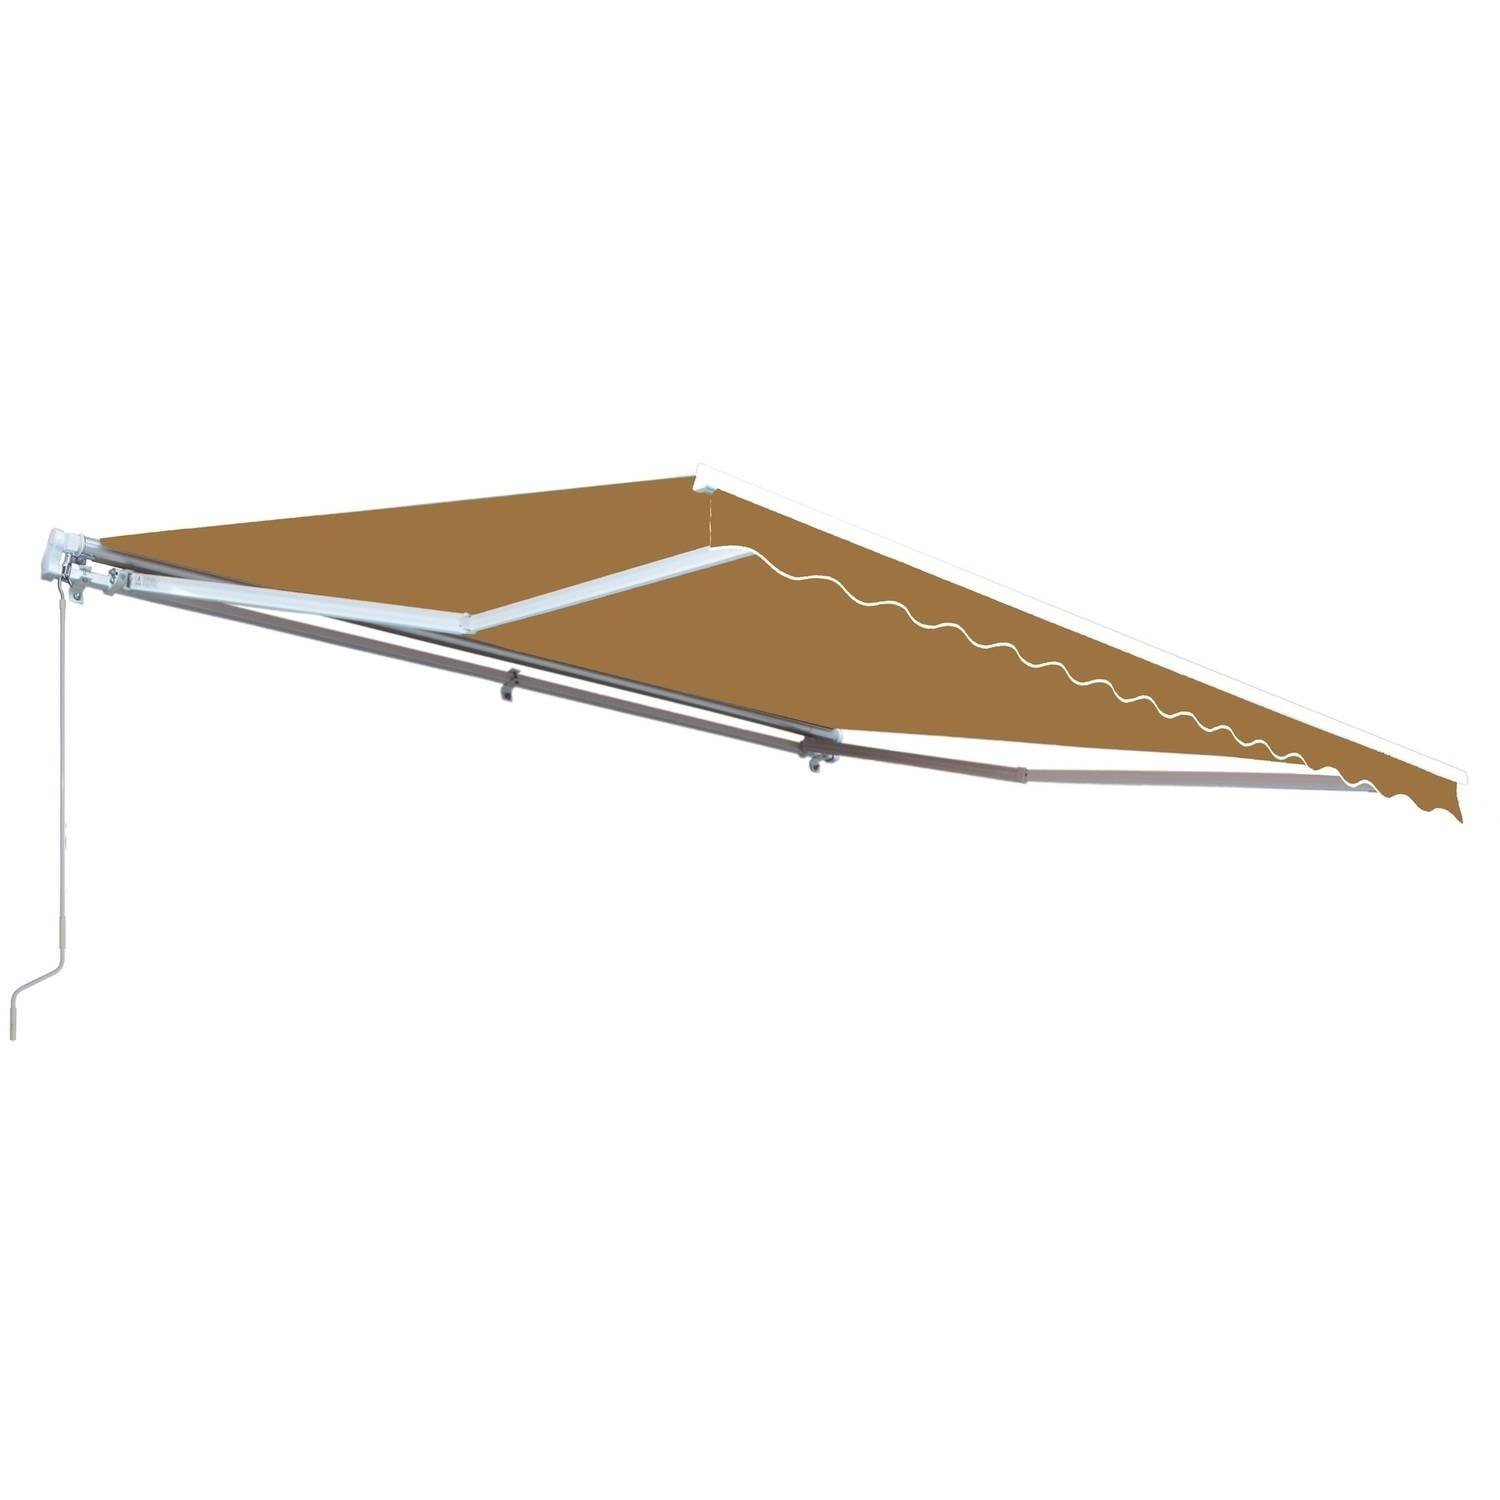 ALEKO Retractable 12' x 10' (3.65m x 3m) Patio Awning, Solid Sand